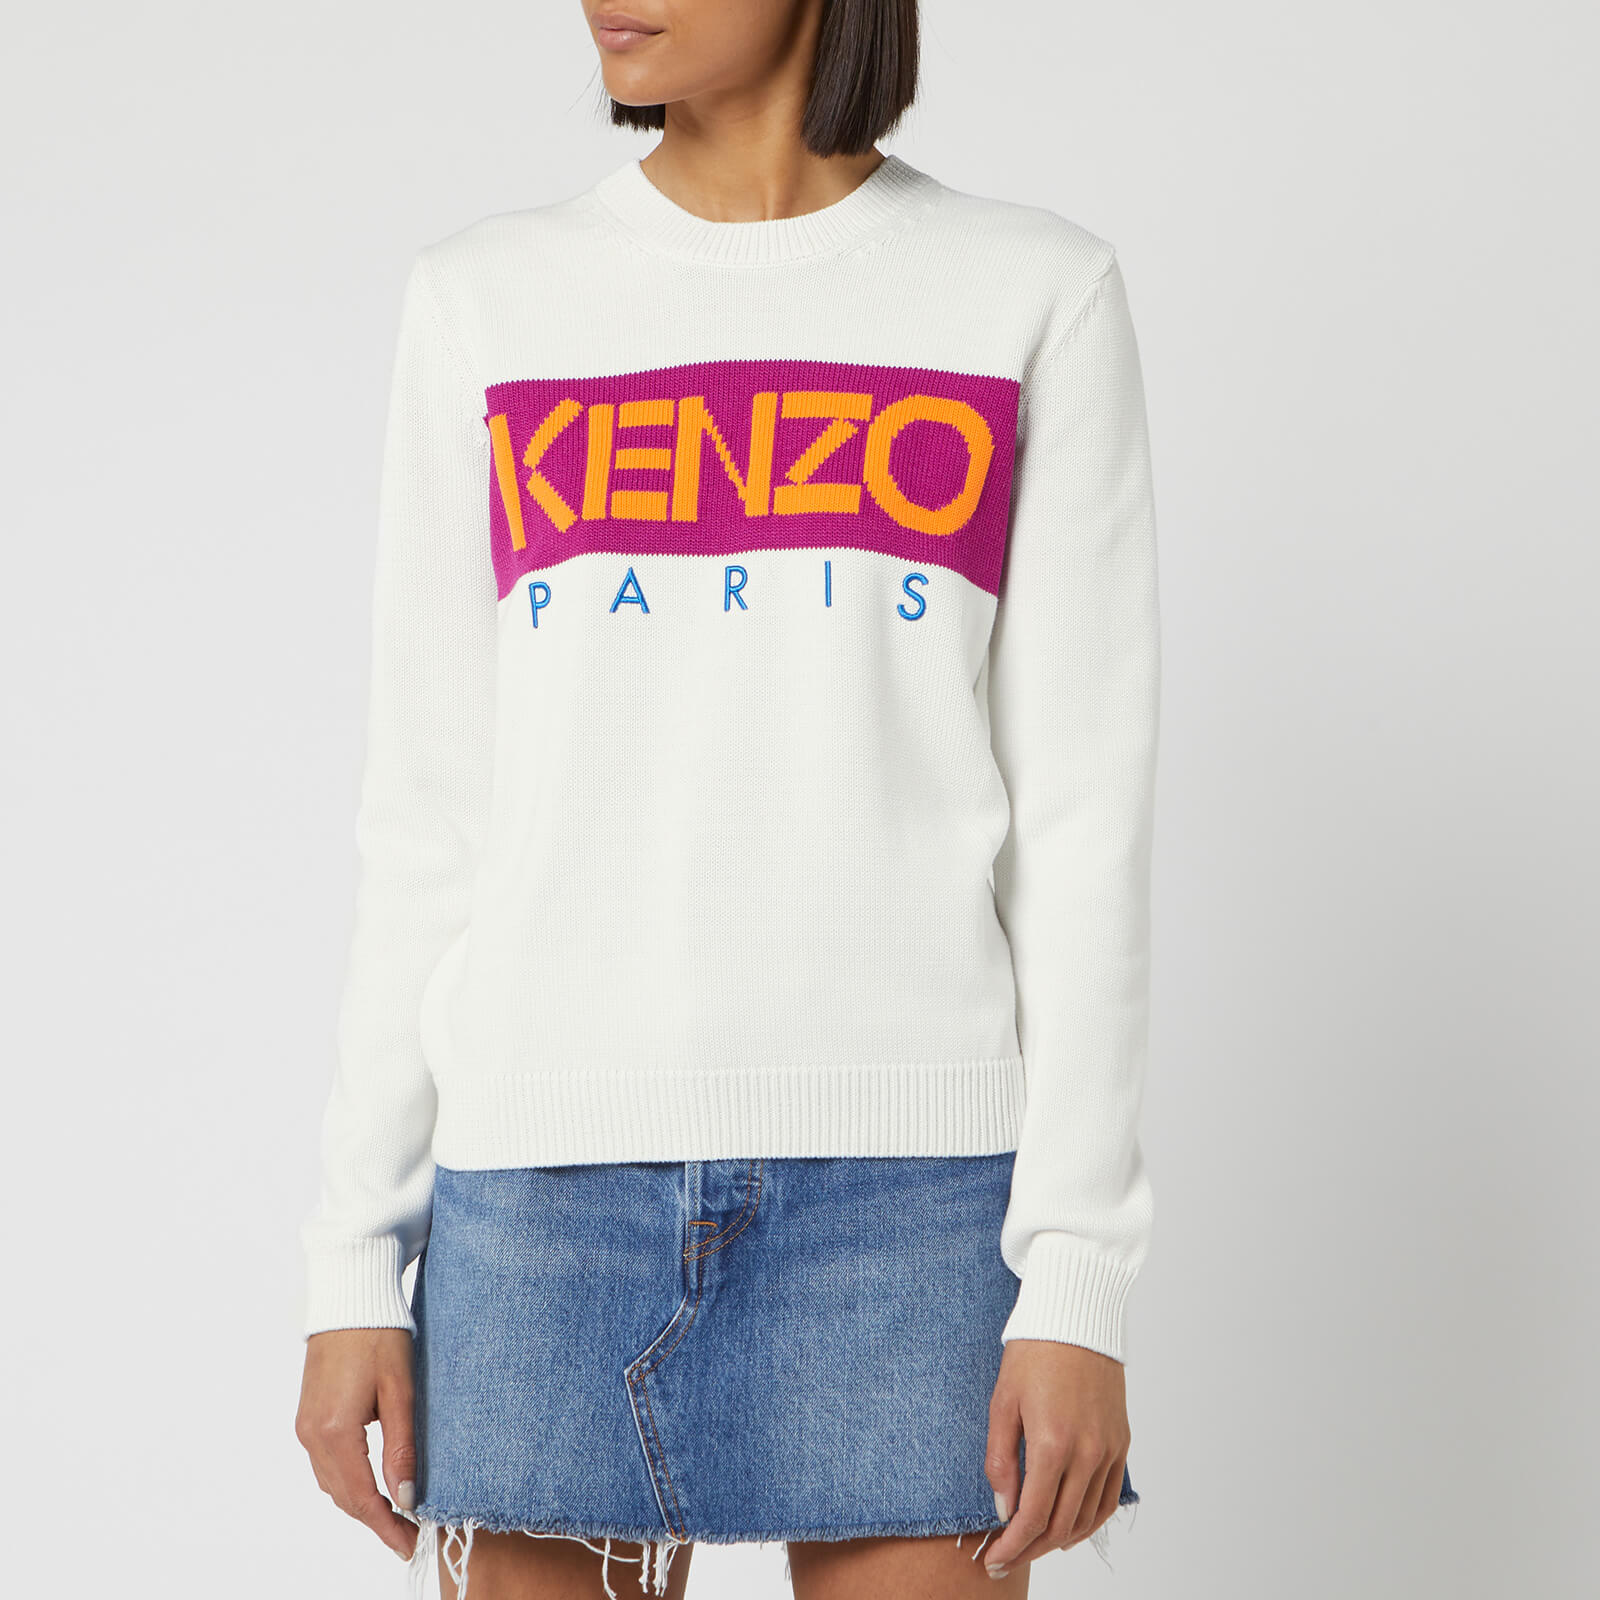 c07cf3a2 KENZO Women's KENZO Paris Jumper - White - Free UK Delivery over £50